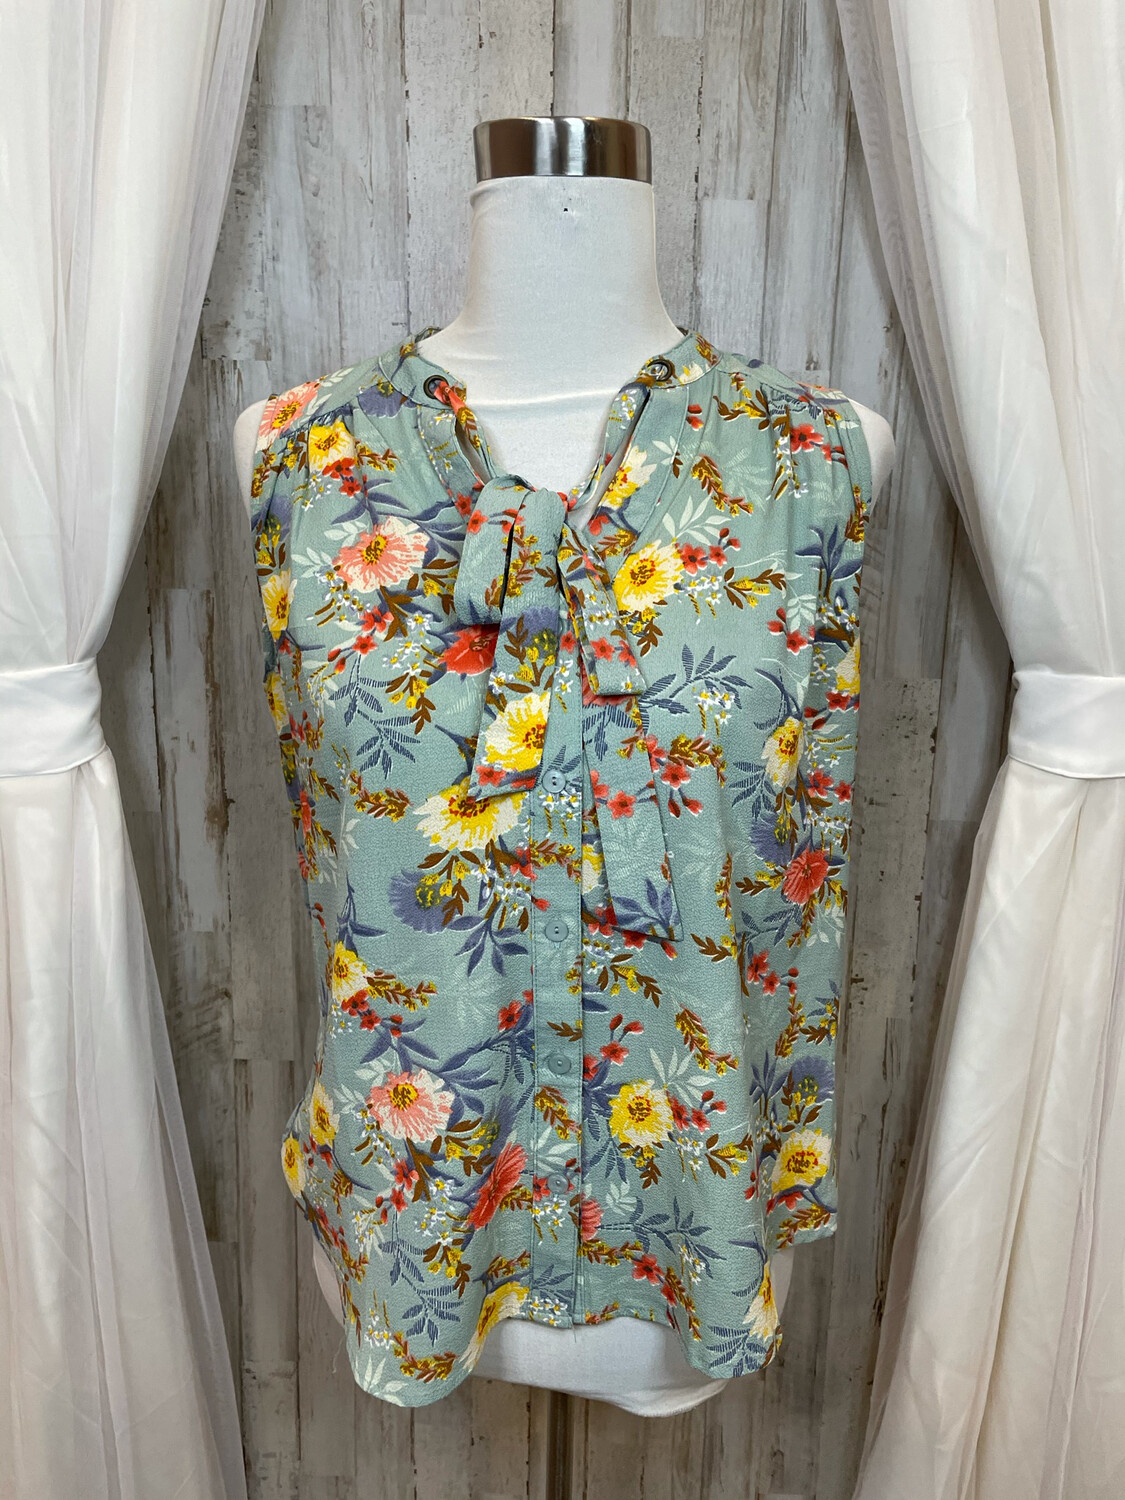 Papermoon Green Floral Top w/Tie at Neck - S